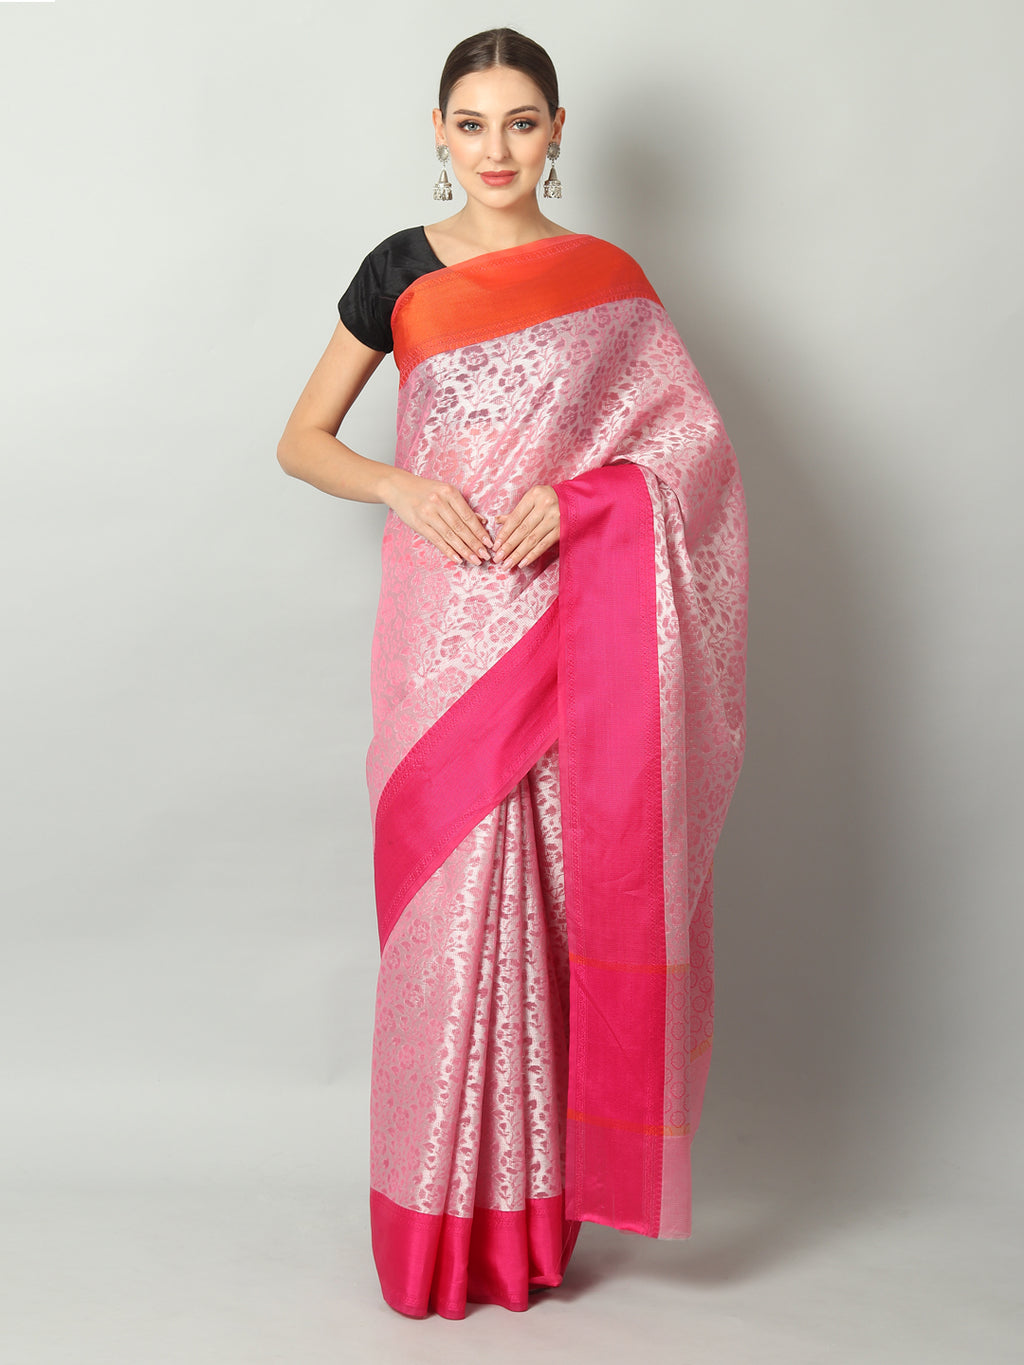 Peach self brocade cotton silk saree with contrasting borders